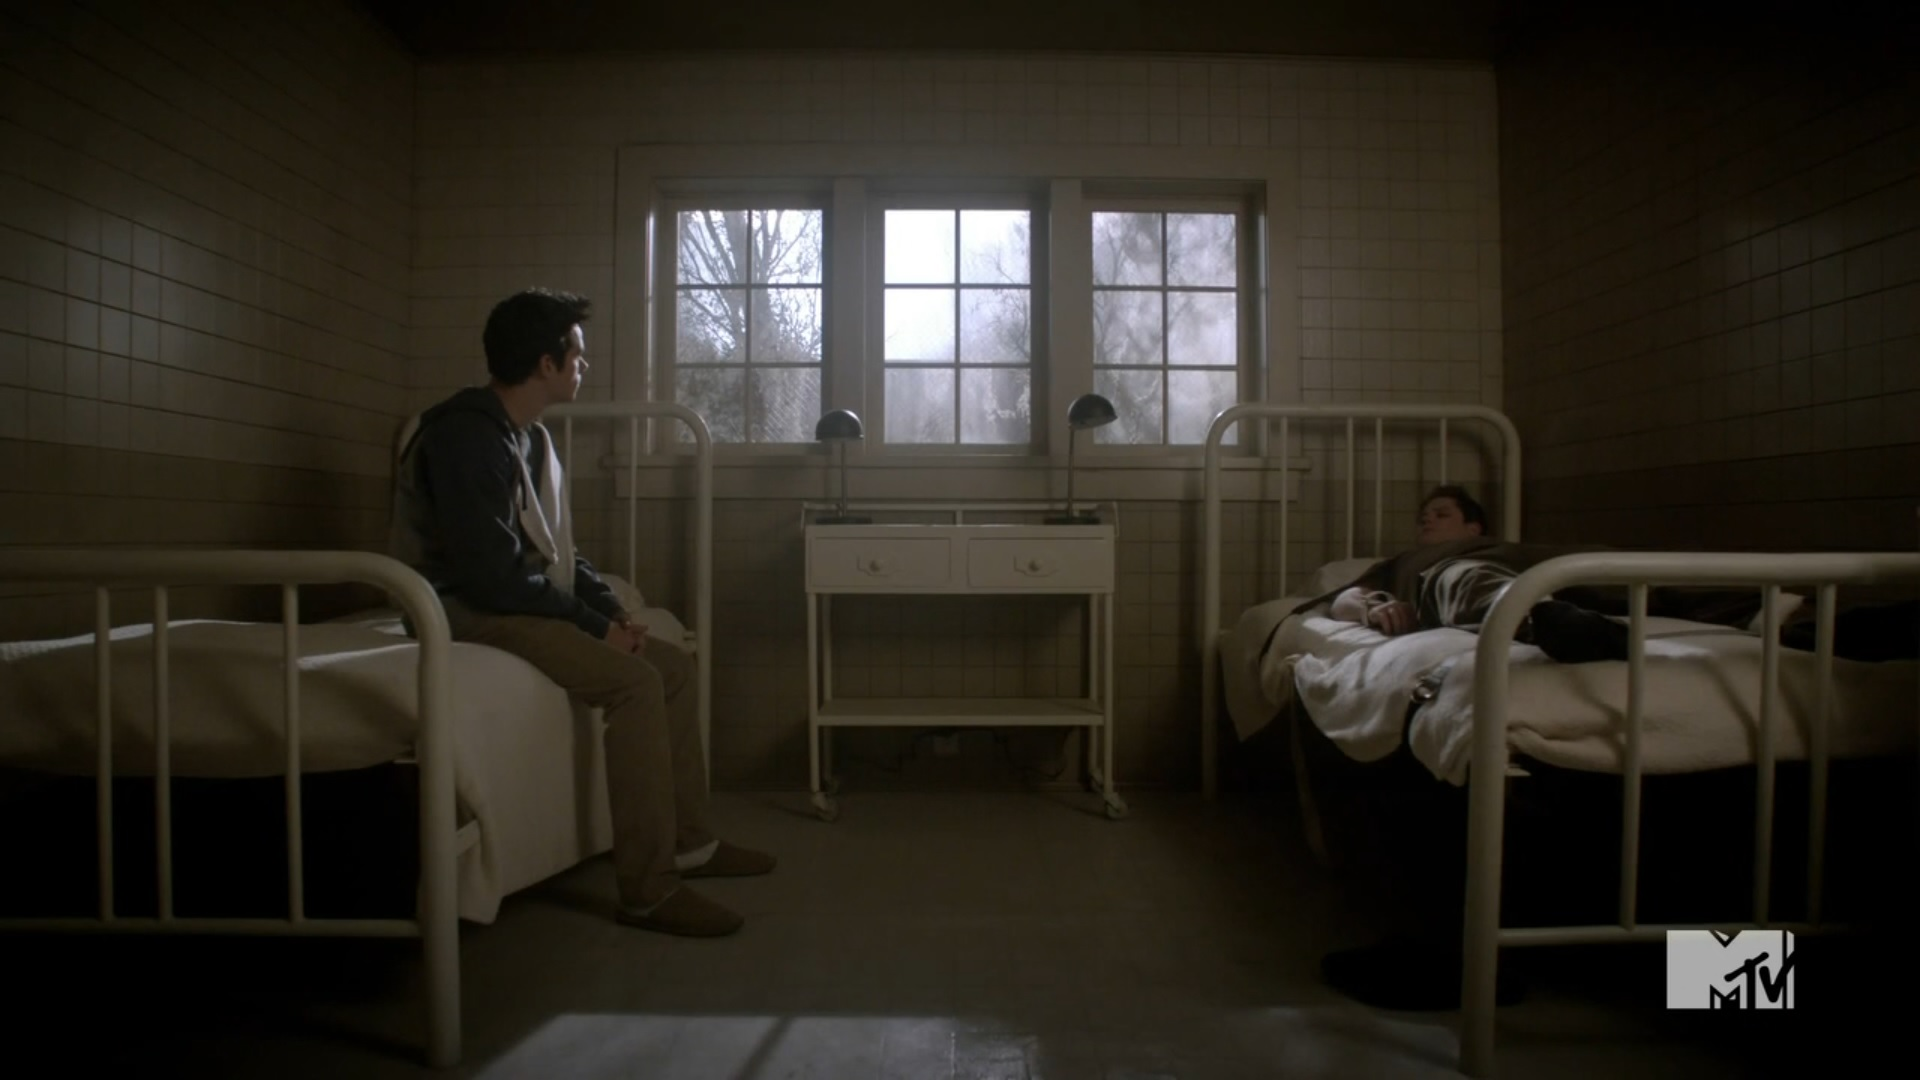 http://img4.wikia.nocookie.net/__cb20140225213555/teenwolf/images/5/5d/Teen_Wolf_Season_3_Episode_20_Echo_House_Dylan_Obrien_Stiles_Stilinski_Sleepless_In_the_Echo_House.jpg